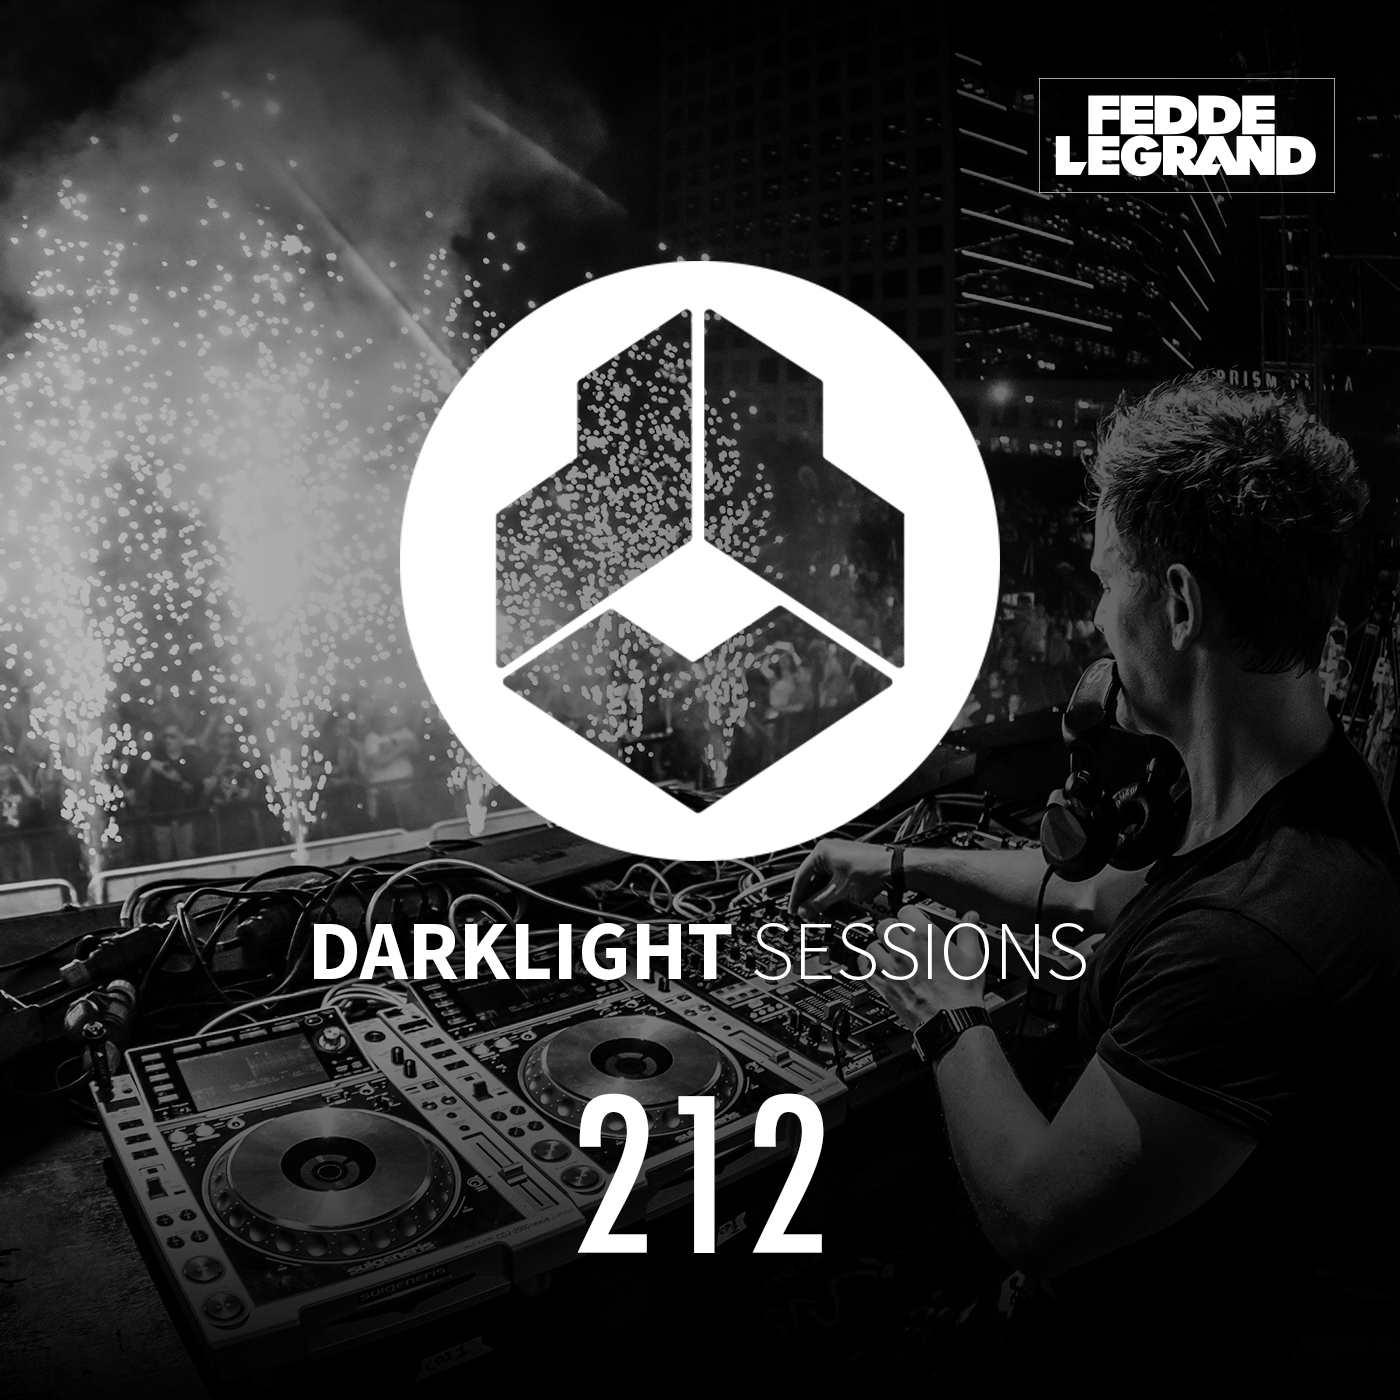 Darklight Sessions 212